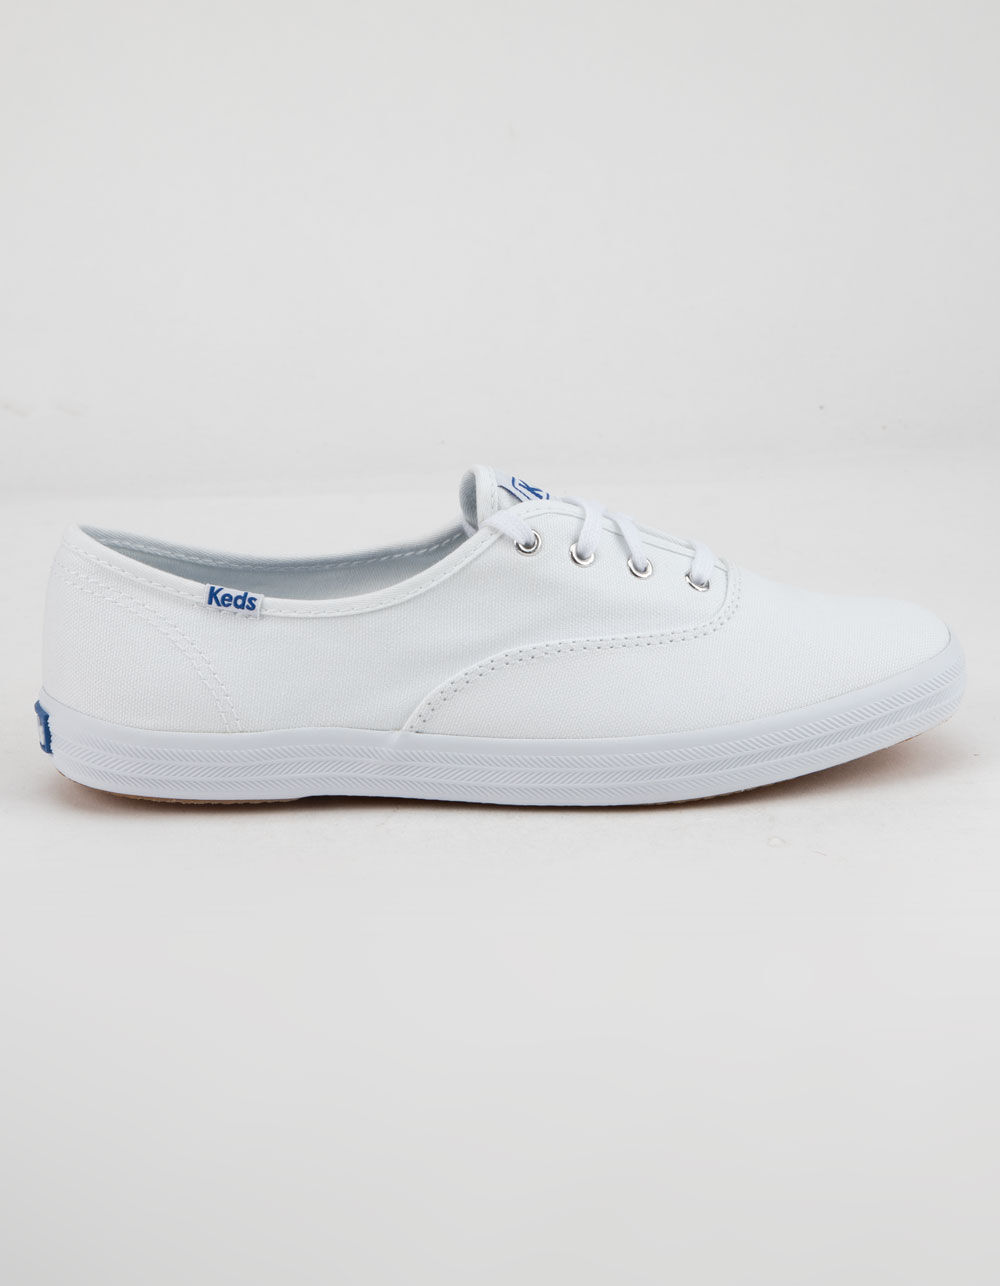 KEDS Champion Originals White Shoes